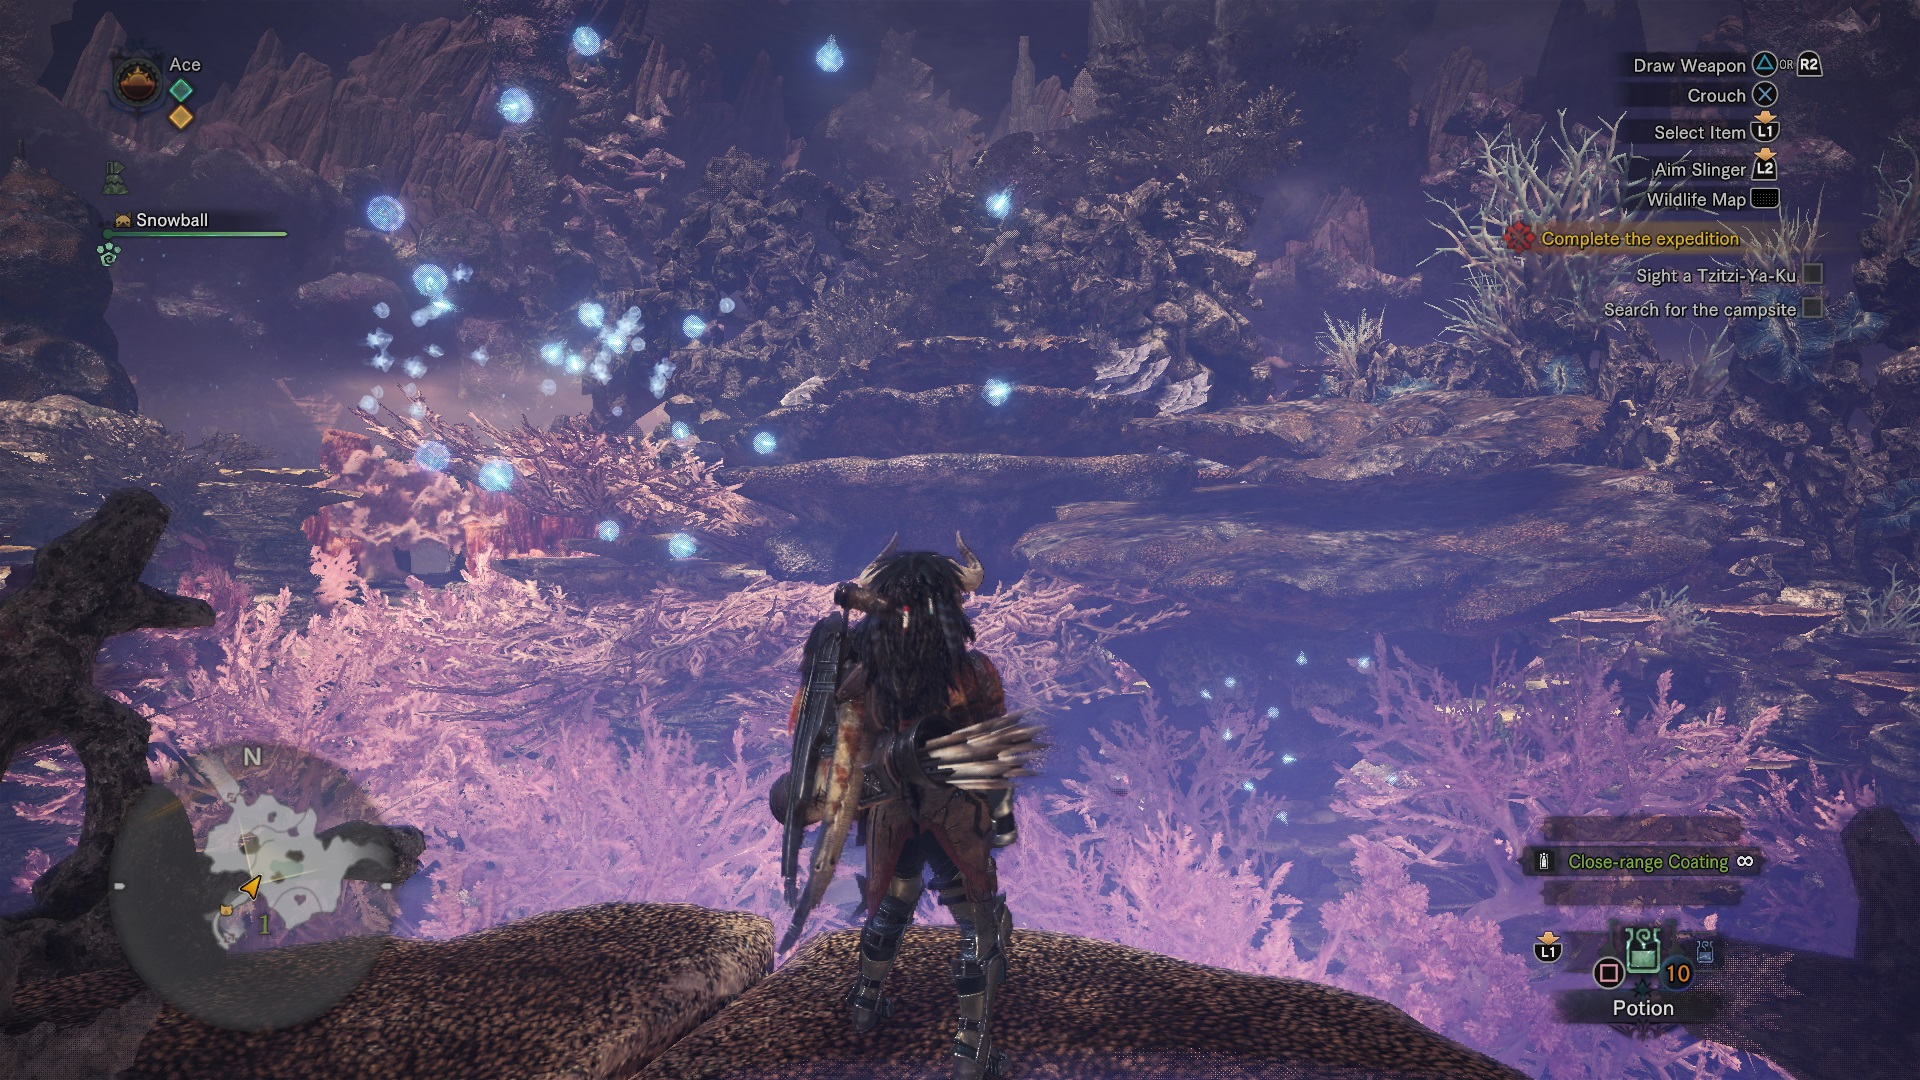 How to Find and Harvest Coral Bone in Monster Hunter: World